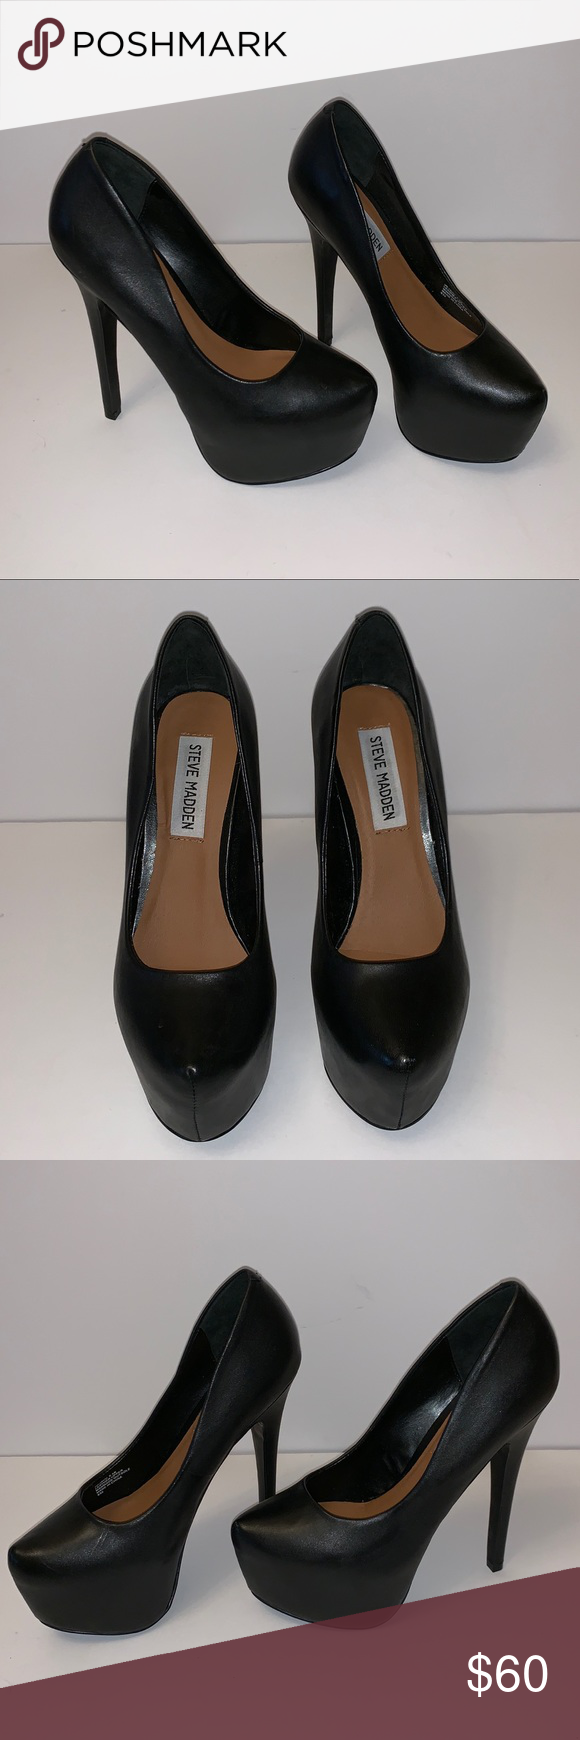 aade8530c87 Steve Madden Dejavu Black Heels Size 5.5 A great pair of black heels from Steve  Madden